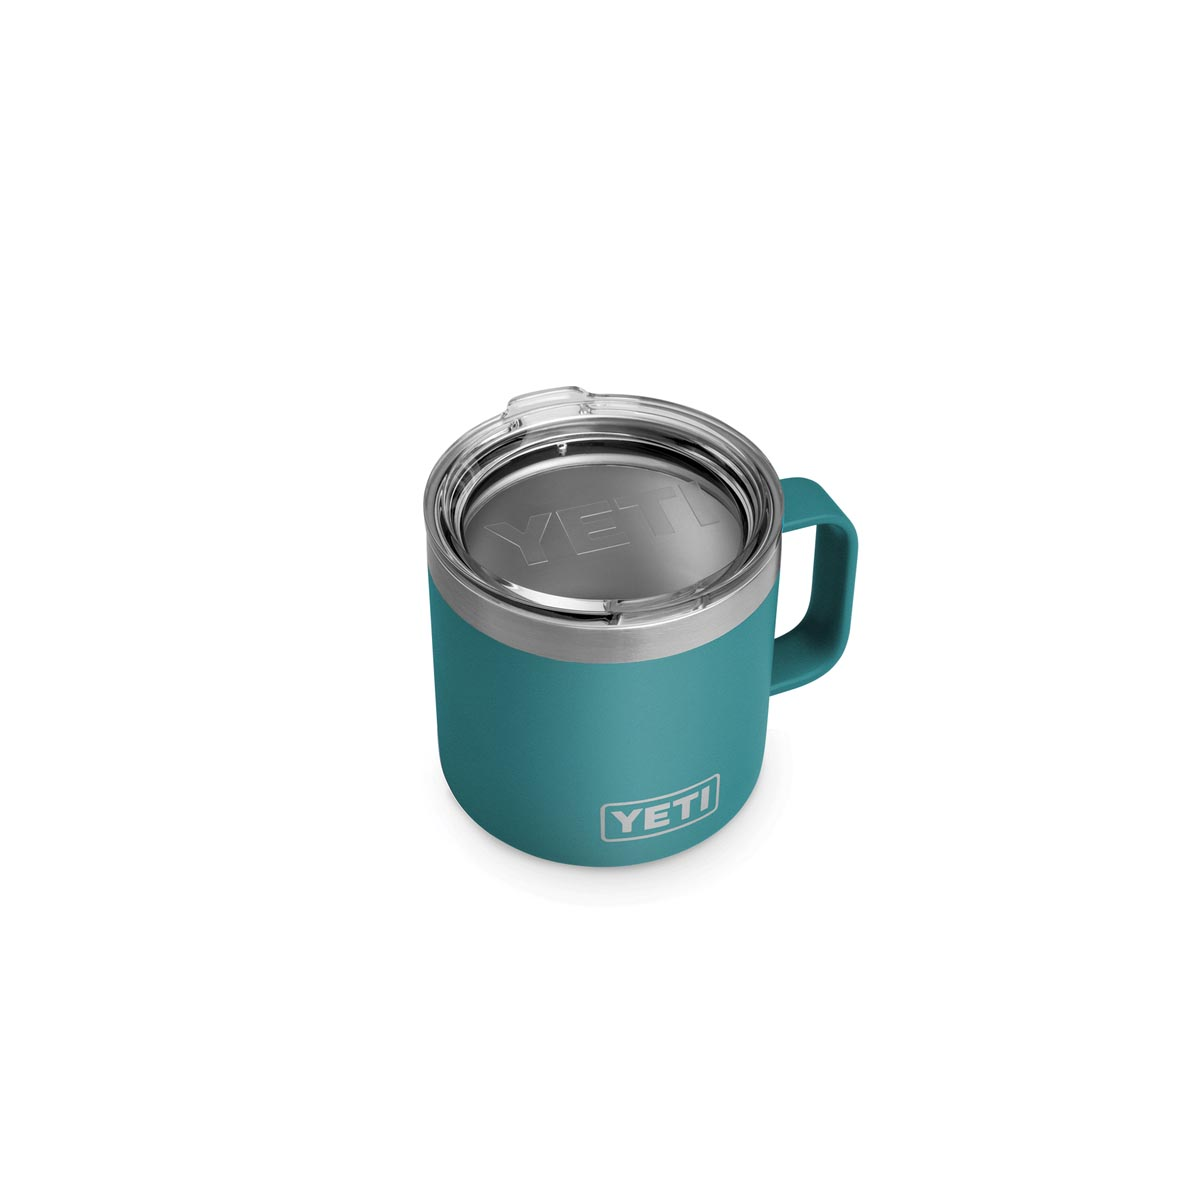 Picture of YETI Rambler 21071300237 Mug, 14 oz Capacity, Stainless Steel, River Green, Insulated